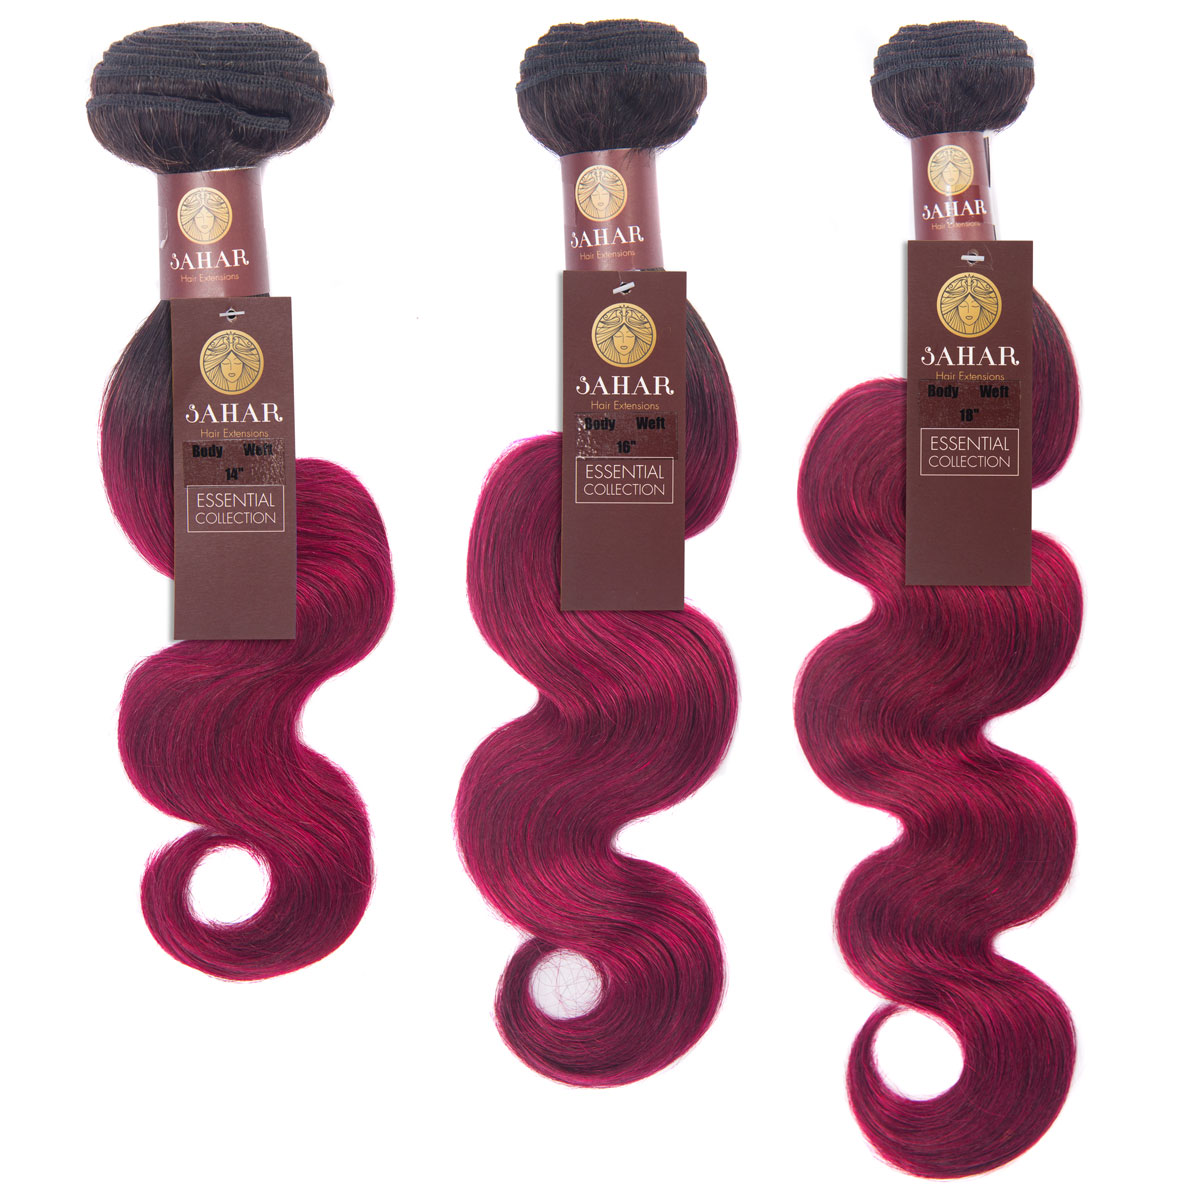 Sahar Essential Virgin Remy Human Hair Extensions Bundle (8A) - #OT118 Body Wave